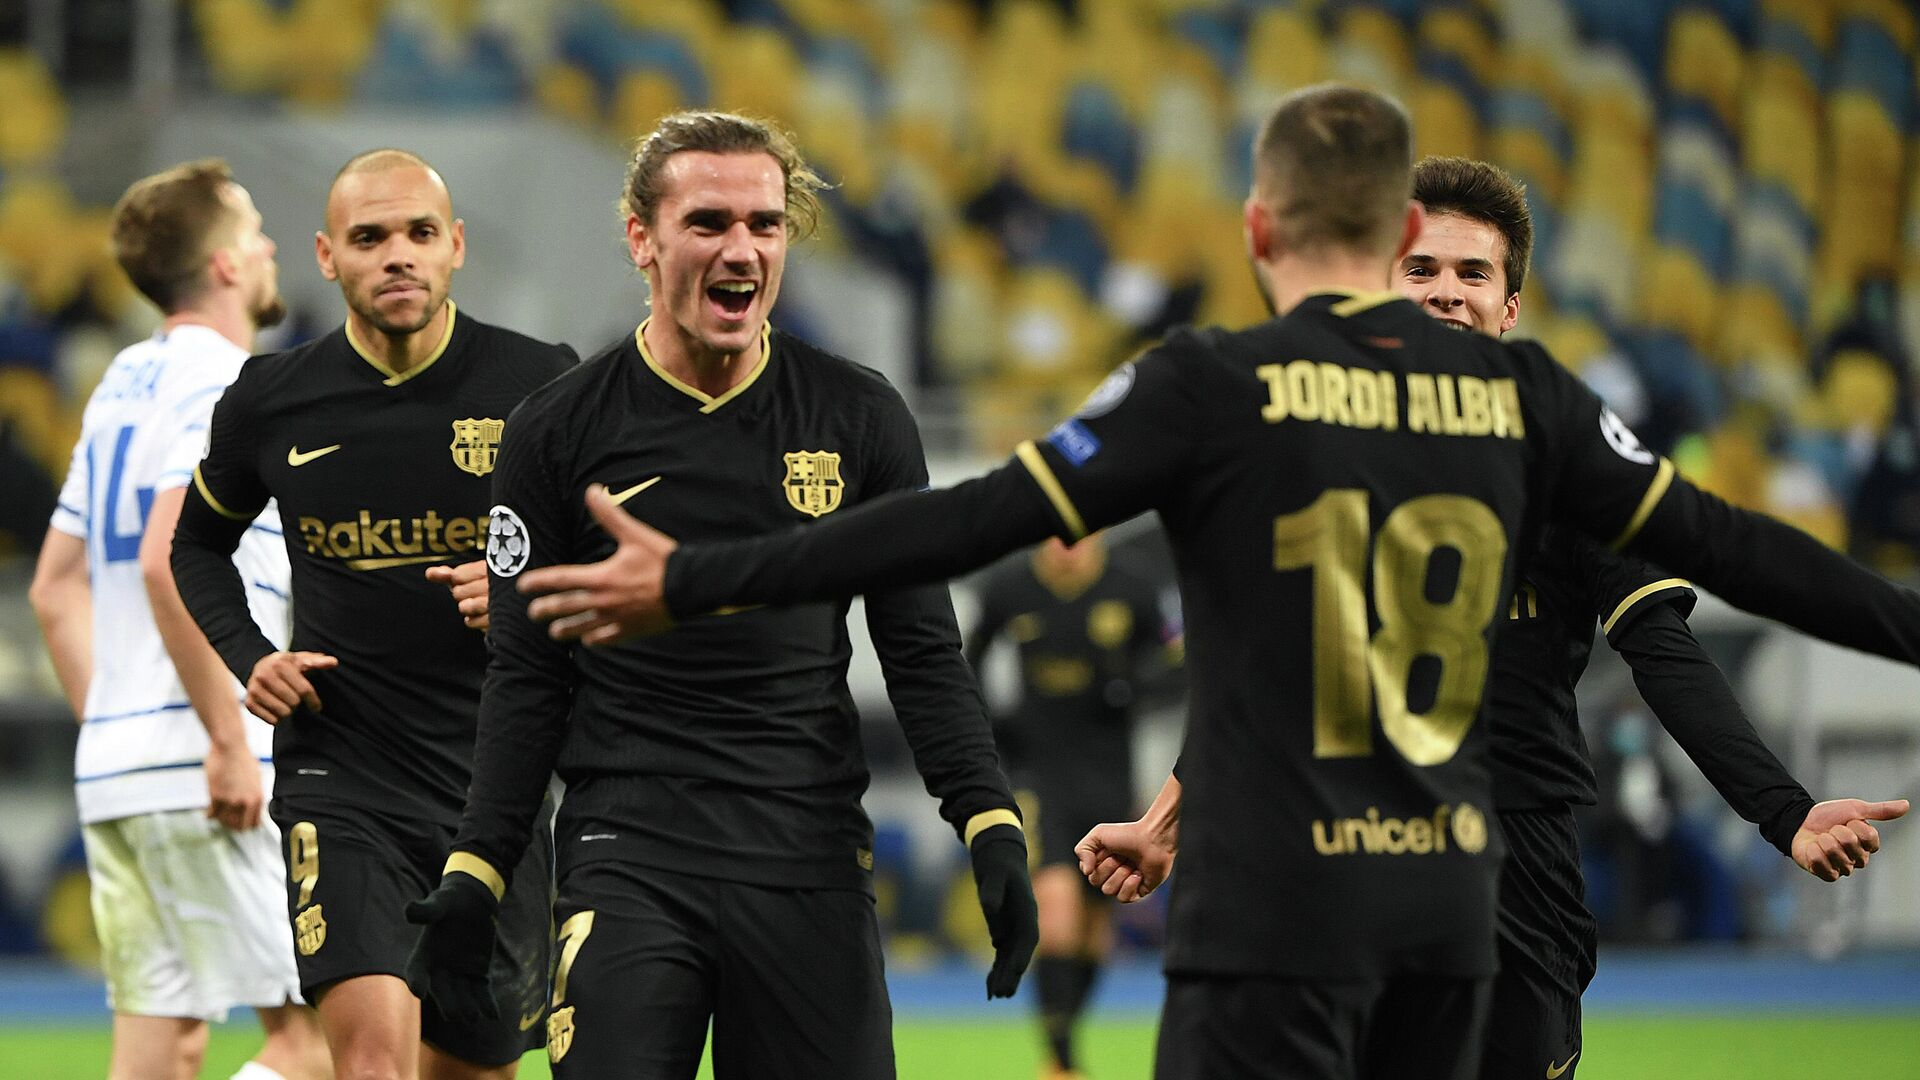 Barcelona's French midfielder Antoine Griezmann (C) celebrates with teammates after scoring his team's fourth goal during the UEFA Champions League group G football match between Dynamo Kiev and Barcelona at the Olympiyskiy stadium in Kiev on November 24, 2020. (Photo by Sergei SUPINSKY / AFP) - РИА Новости, 1920, 25.11.2020